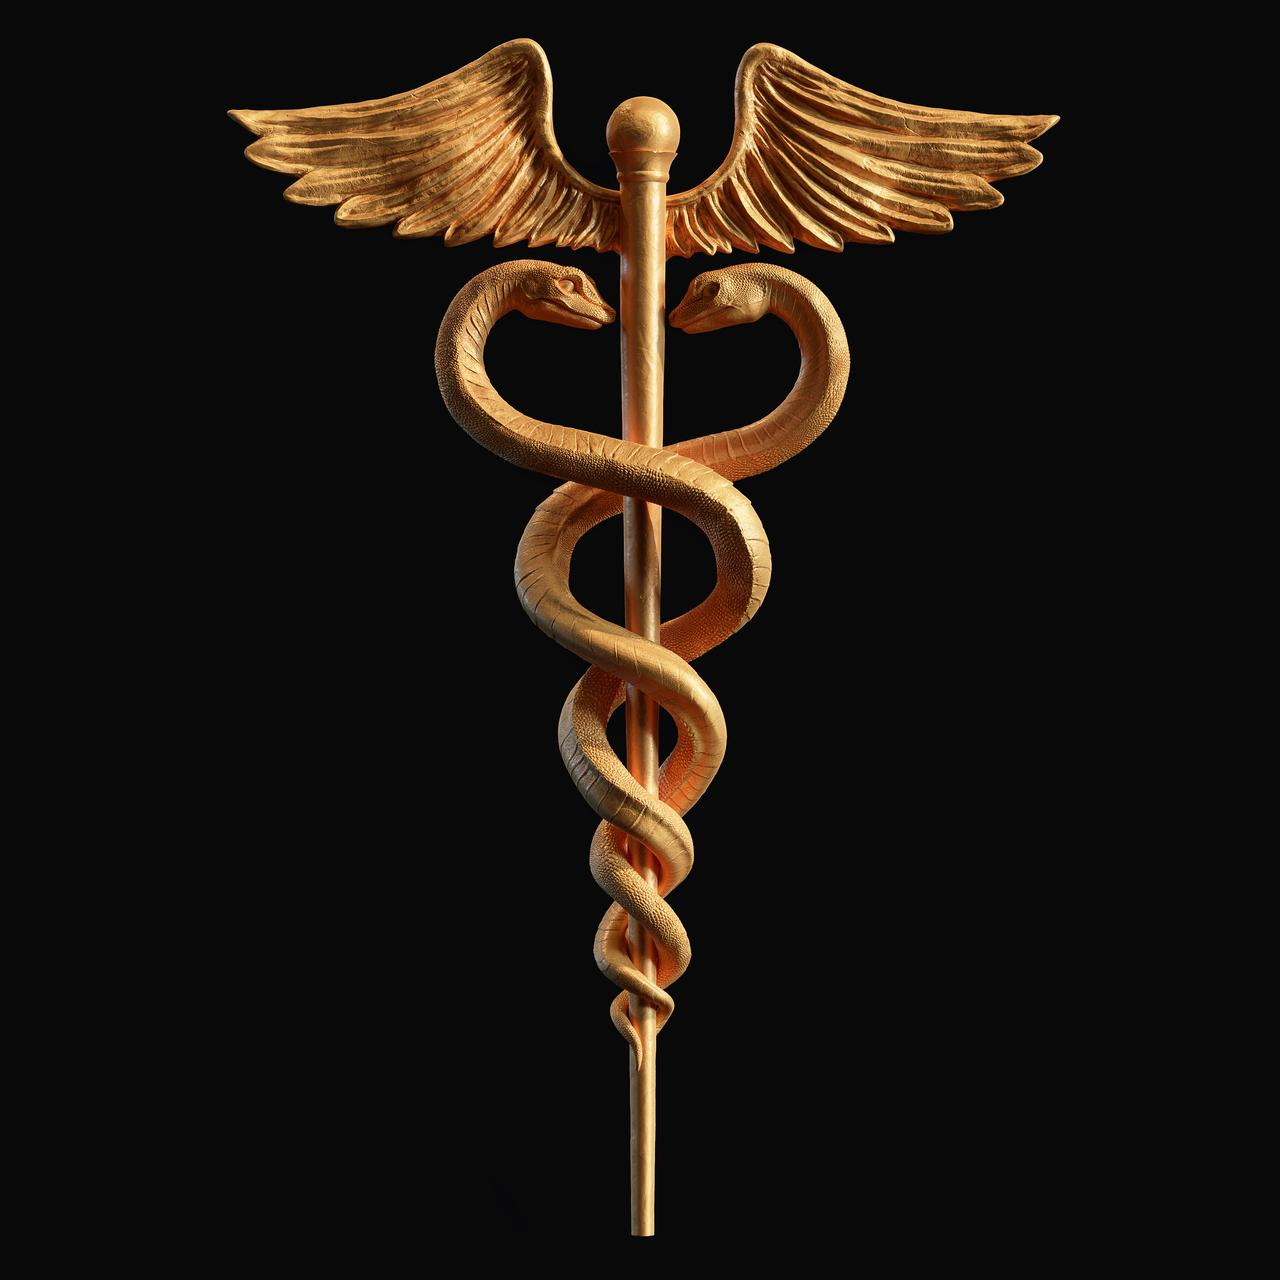 Caduceus,  Symbols and Meanings